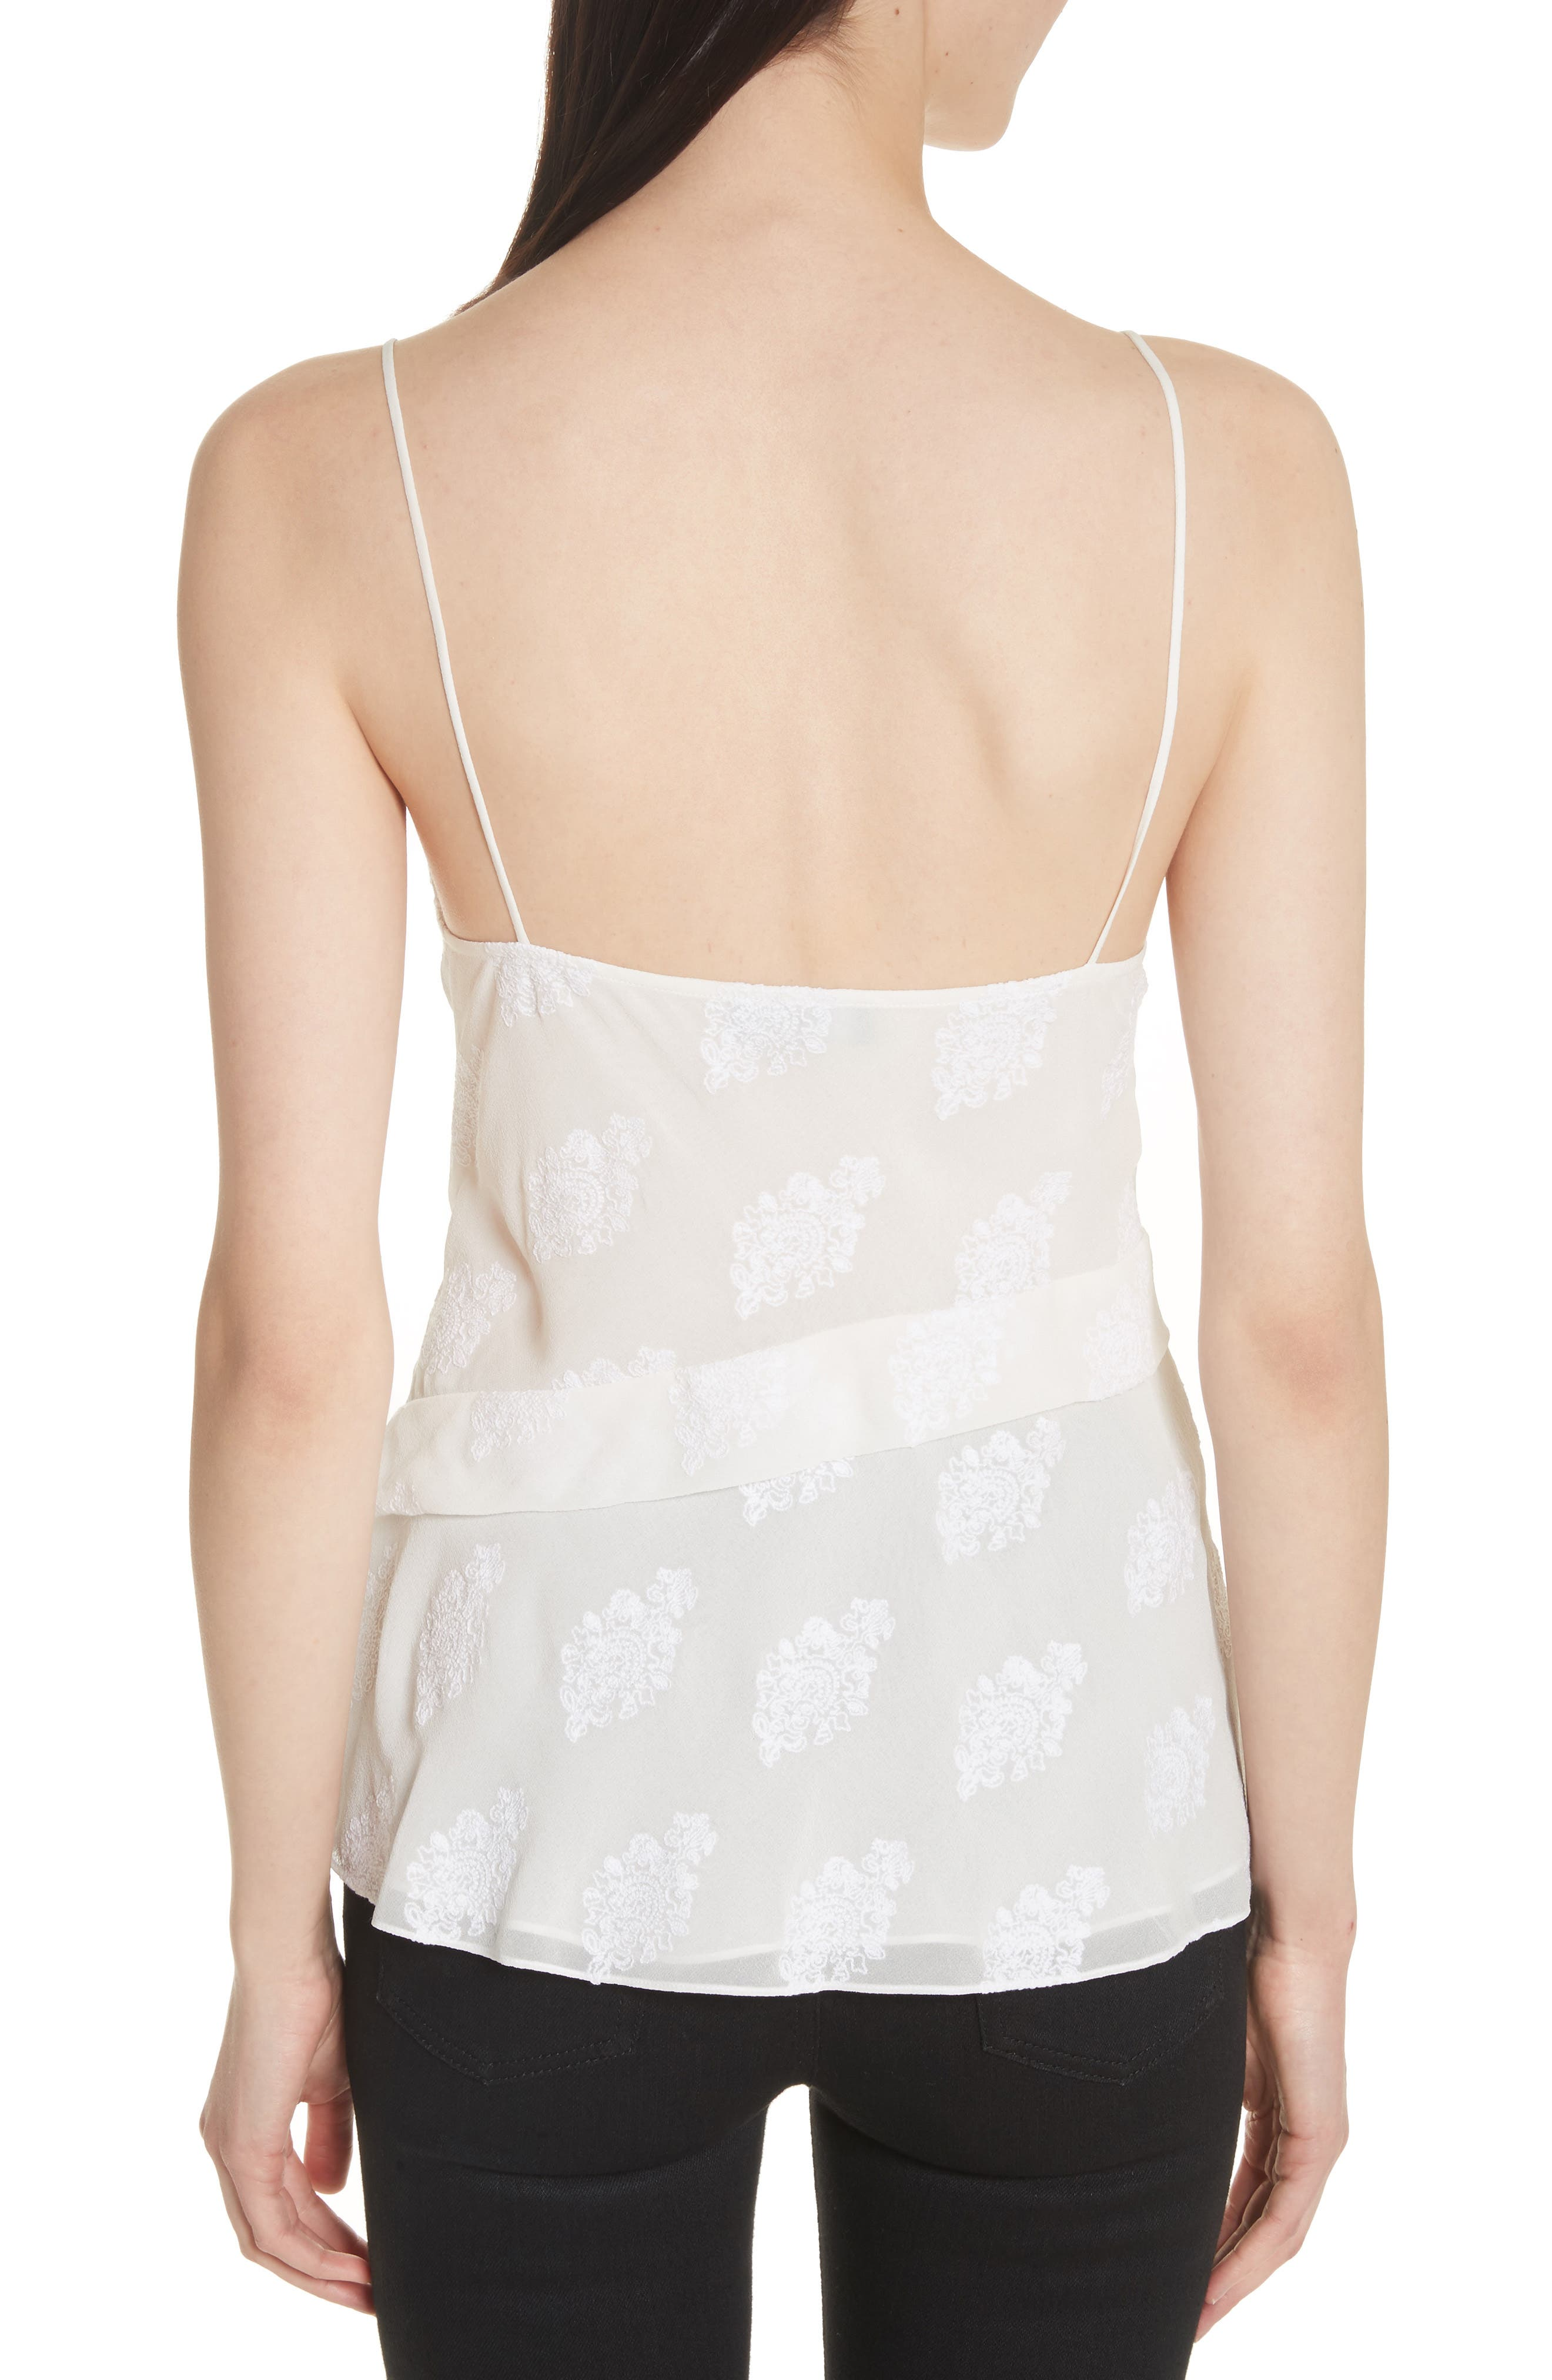 C2.Co Crossover Camisole,                             Alternate thumbnail 2, color,                             White/ White